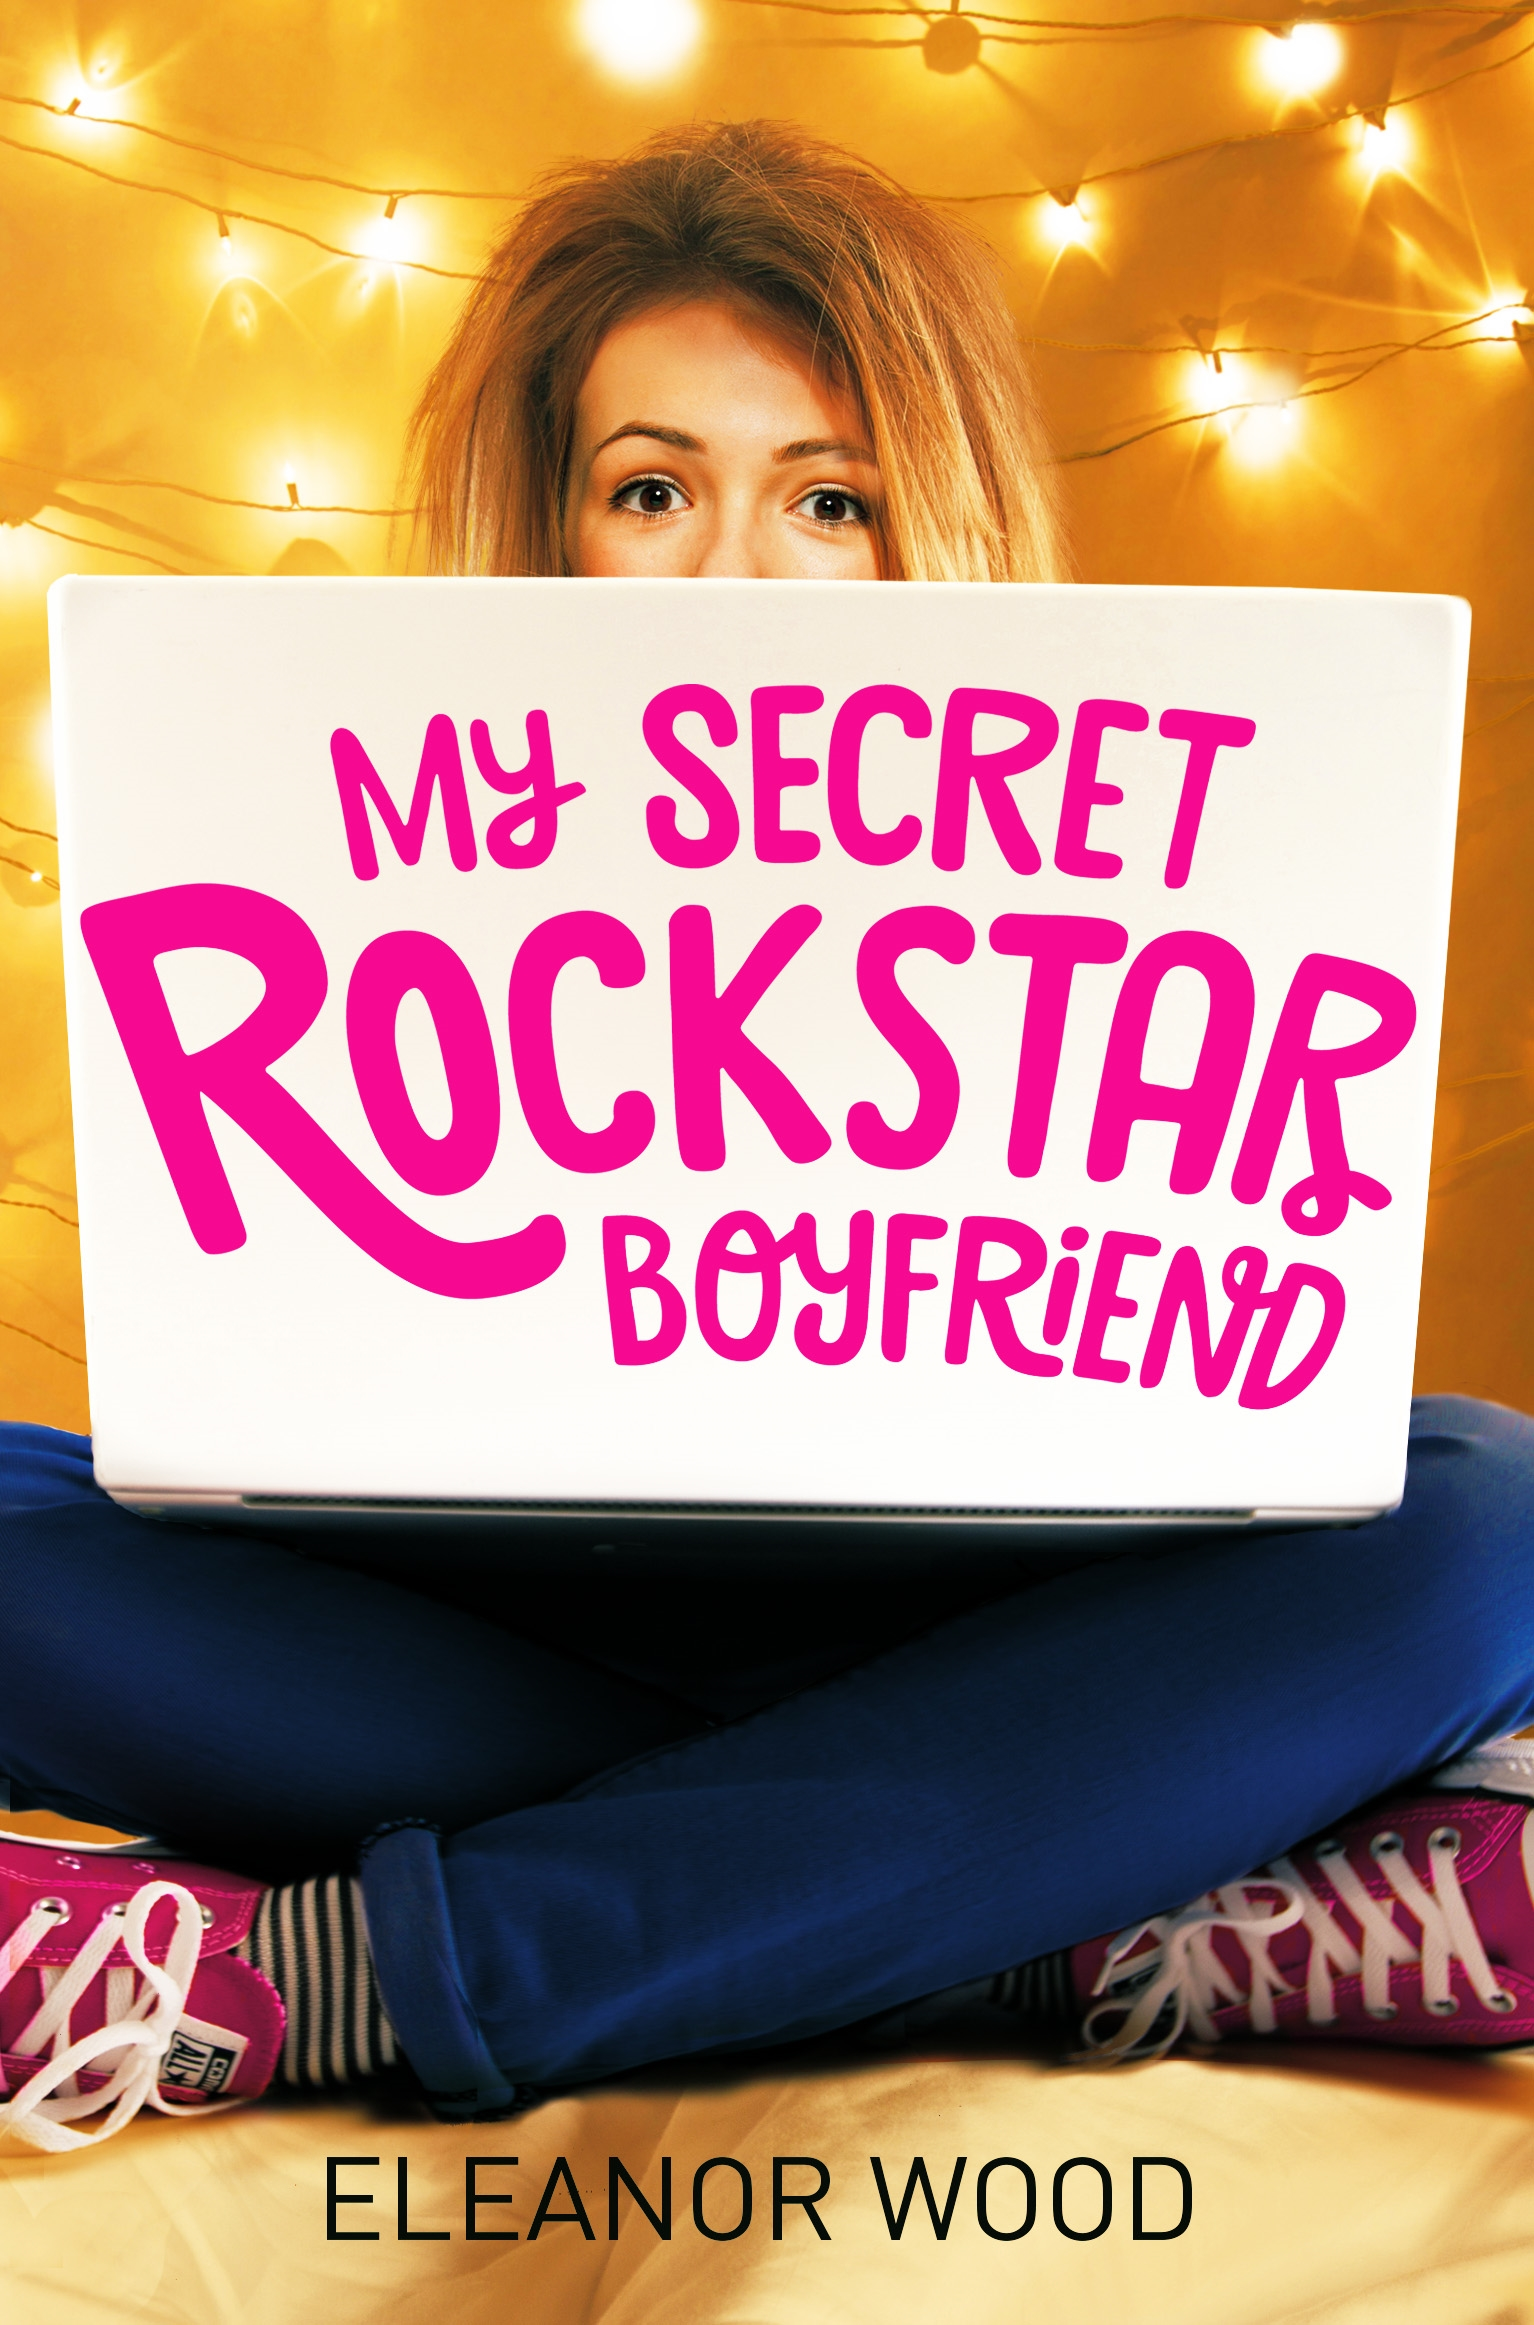 My Secret Rockstar Boyfriend review